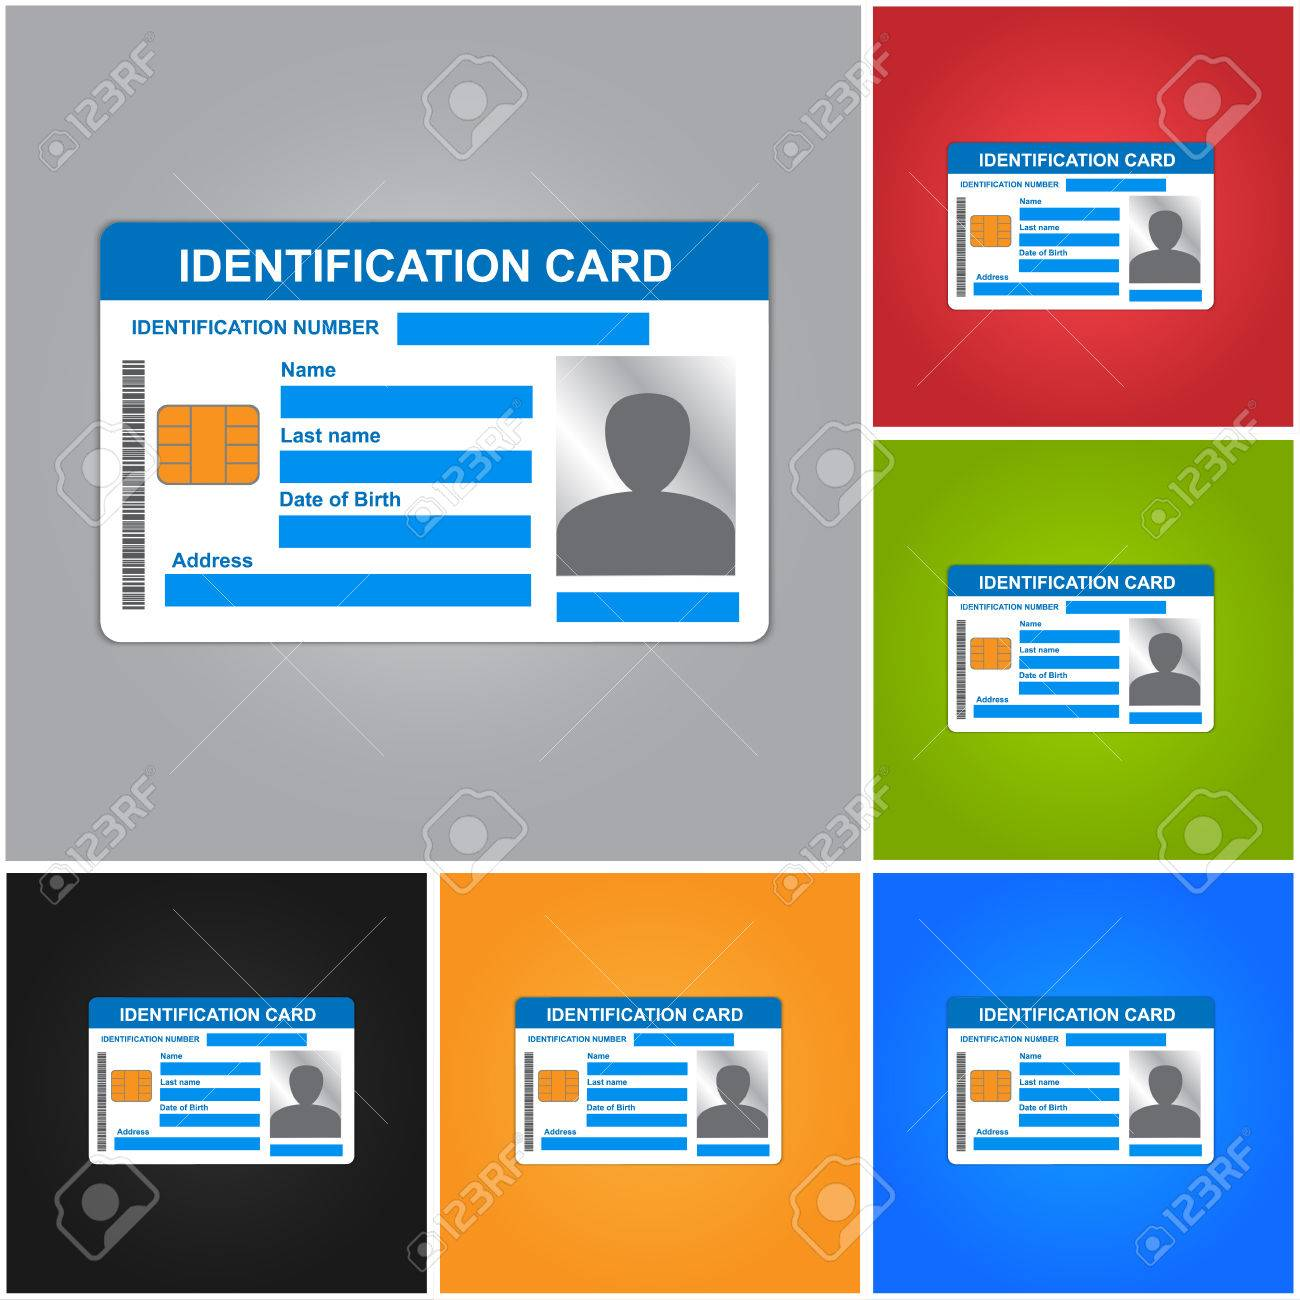 Identification Card Isolated on Color Background. ID Card Icons Set. - 42429132